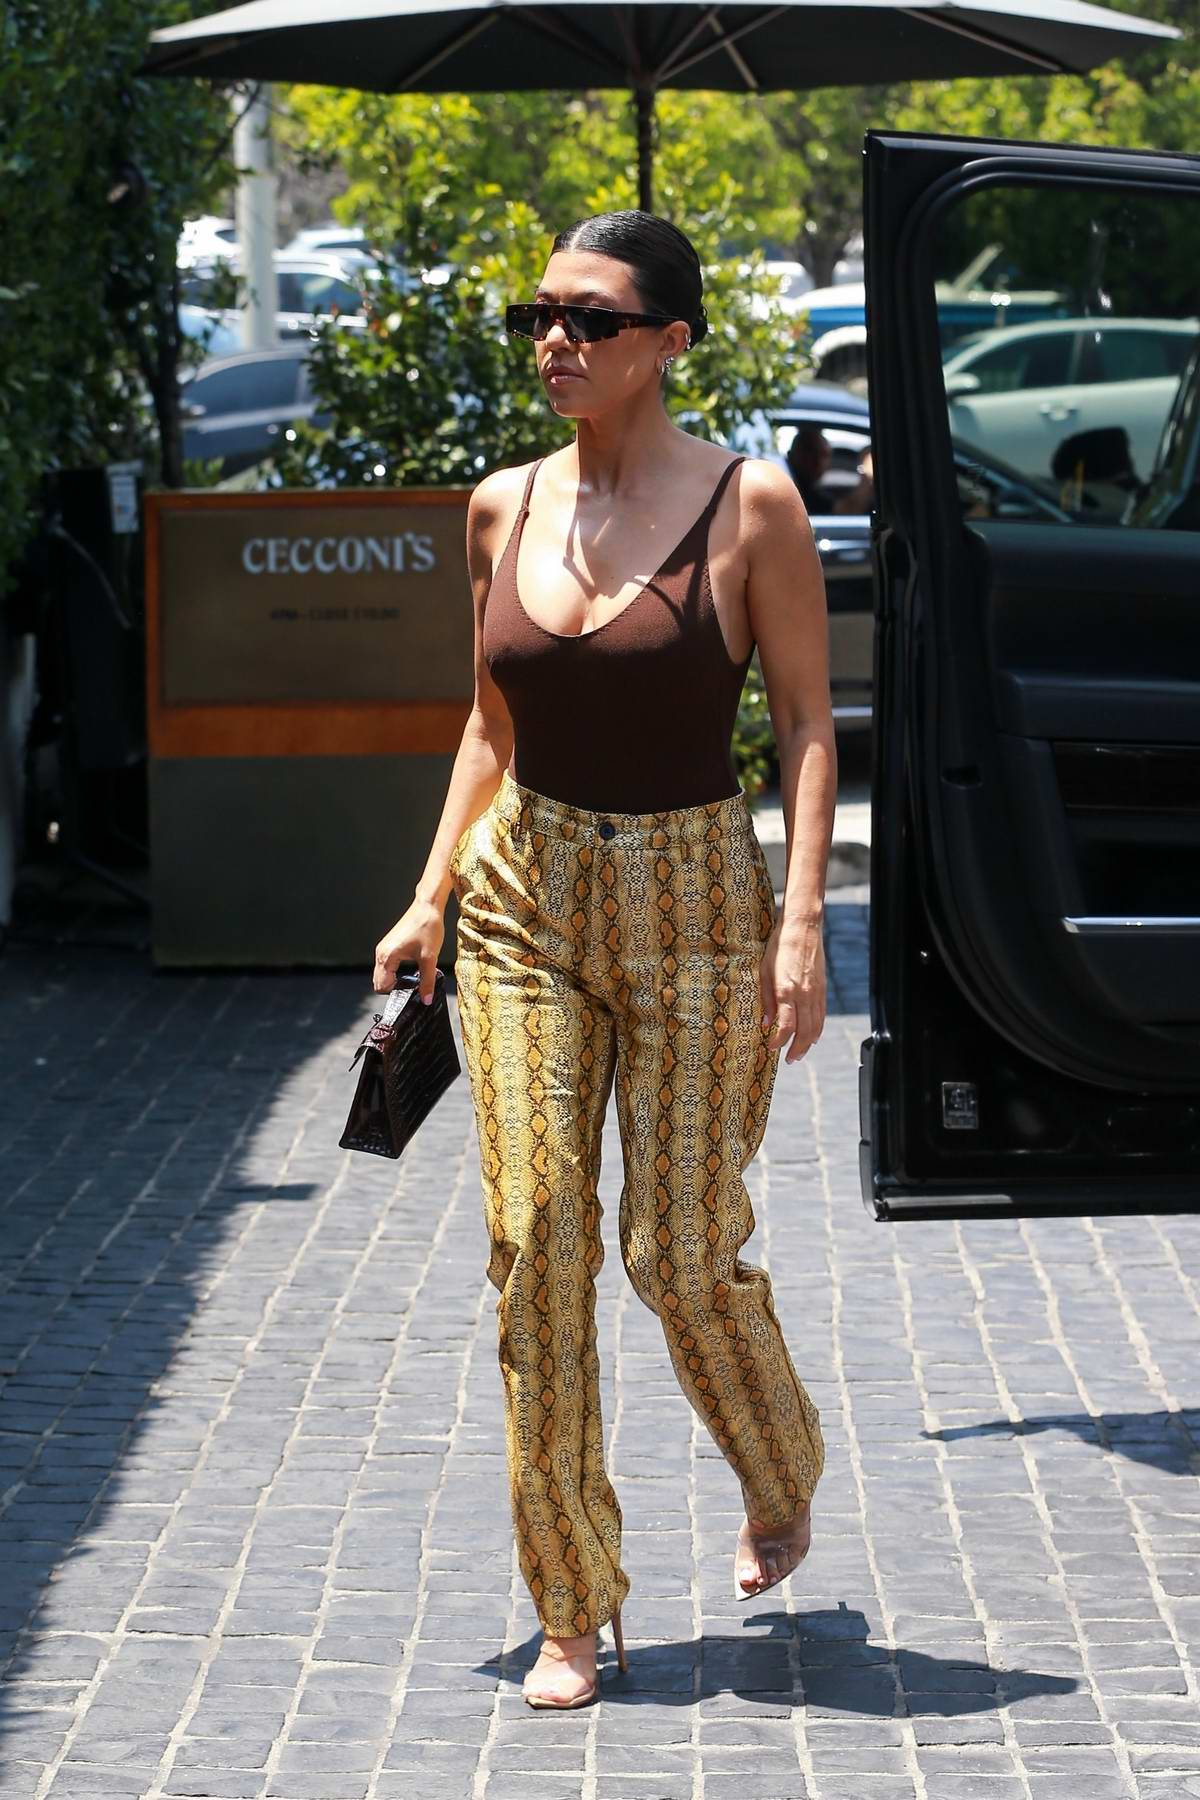 Kourtney Kardashian rocks a brown tank top and snakeskin print pants as she arrives at Cecconi's for lunch in Los Angeles